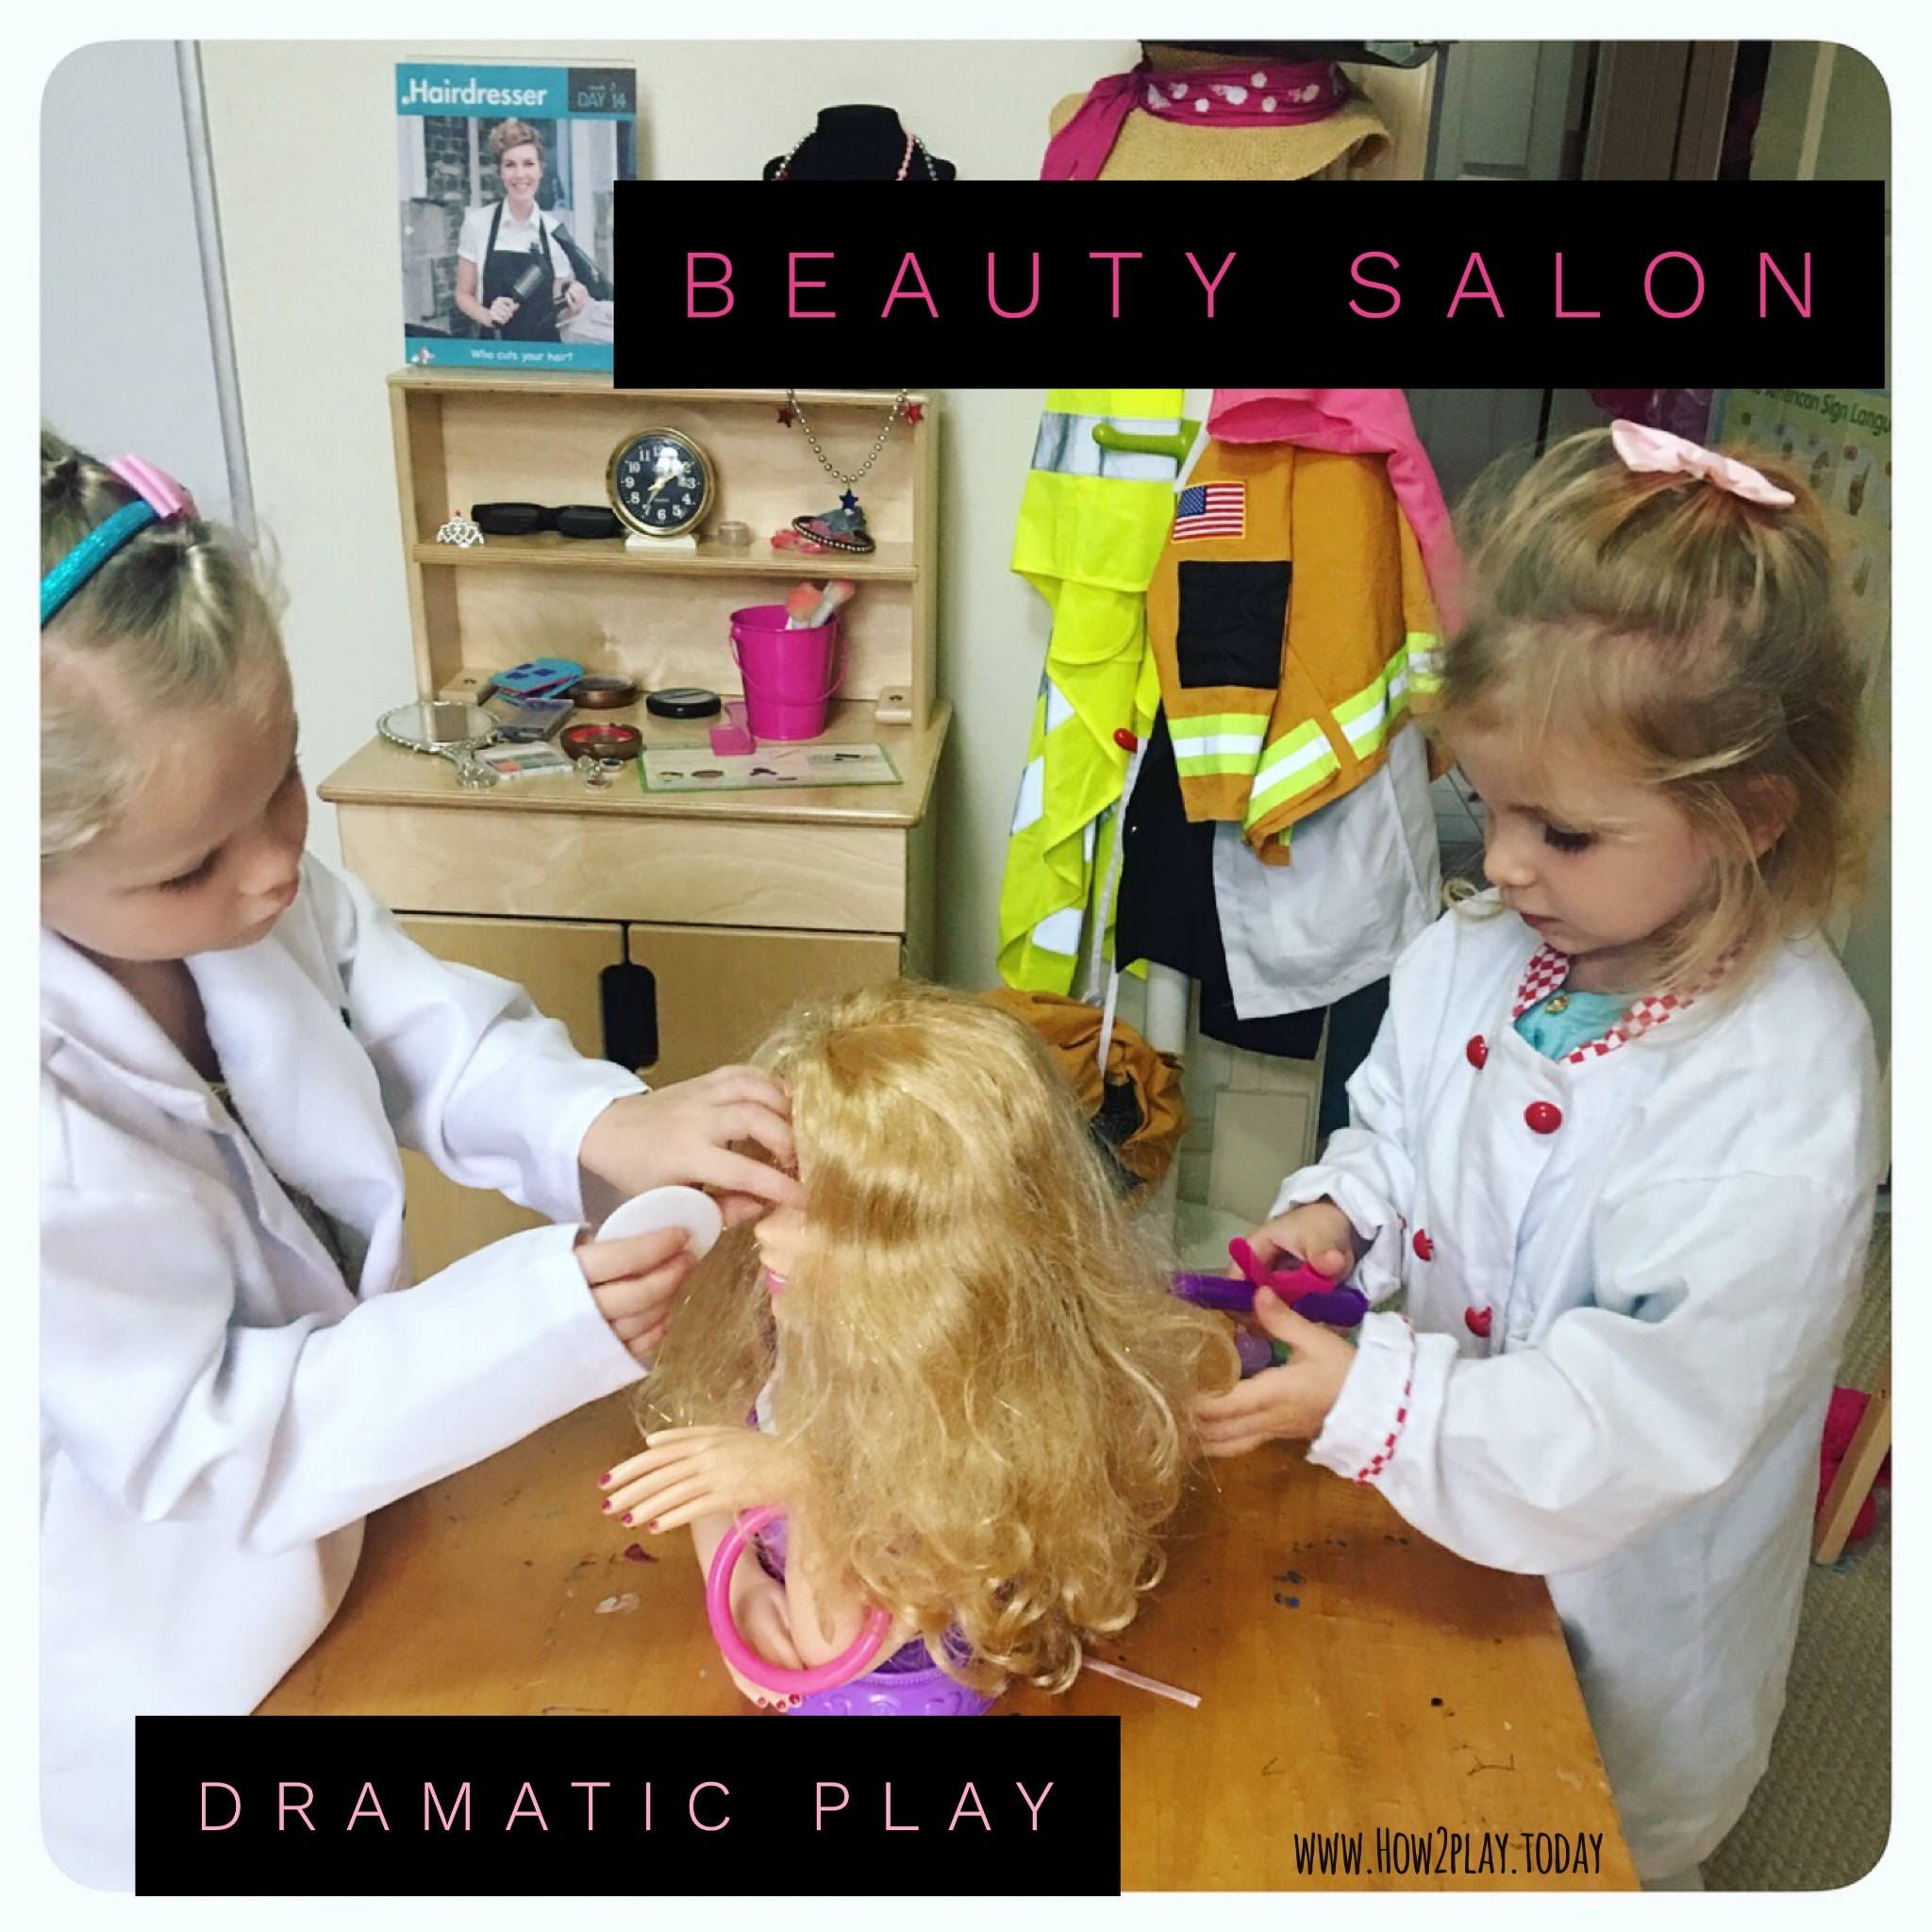 Beauty Salon - Dramatic Play